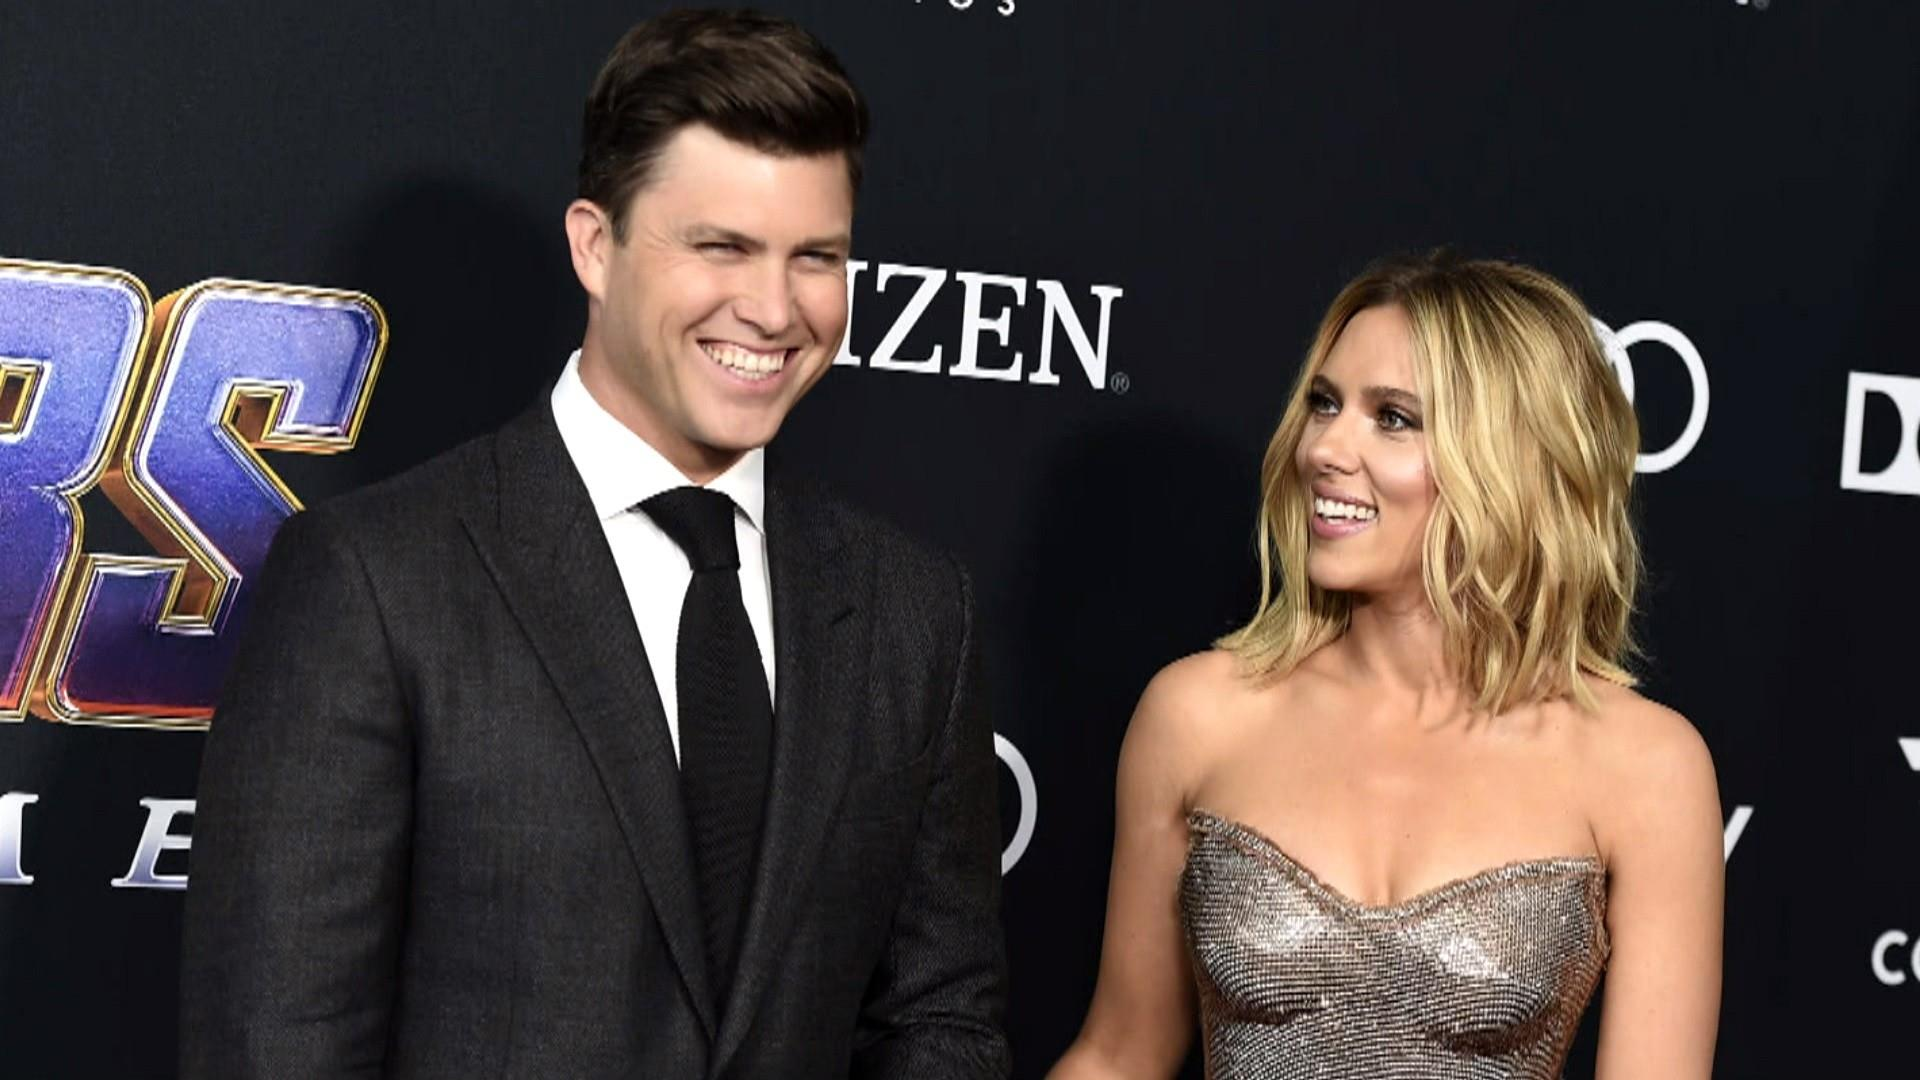 Colin Jost and Scarlett Johansson are engaged!